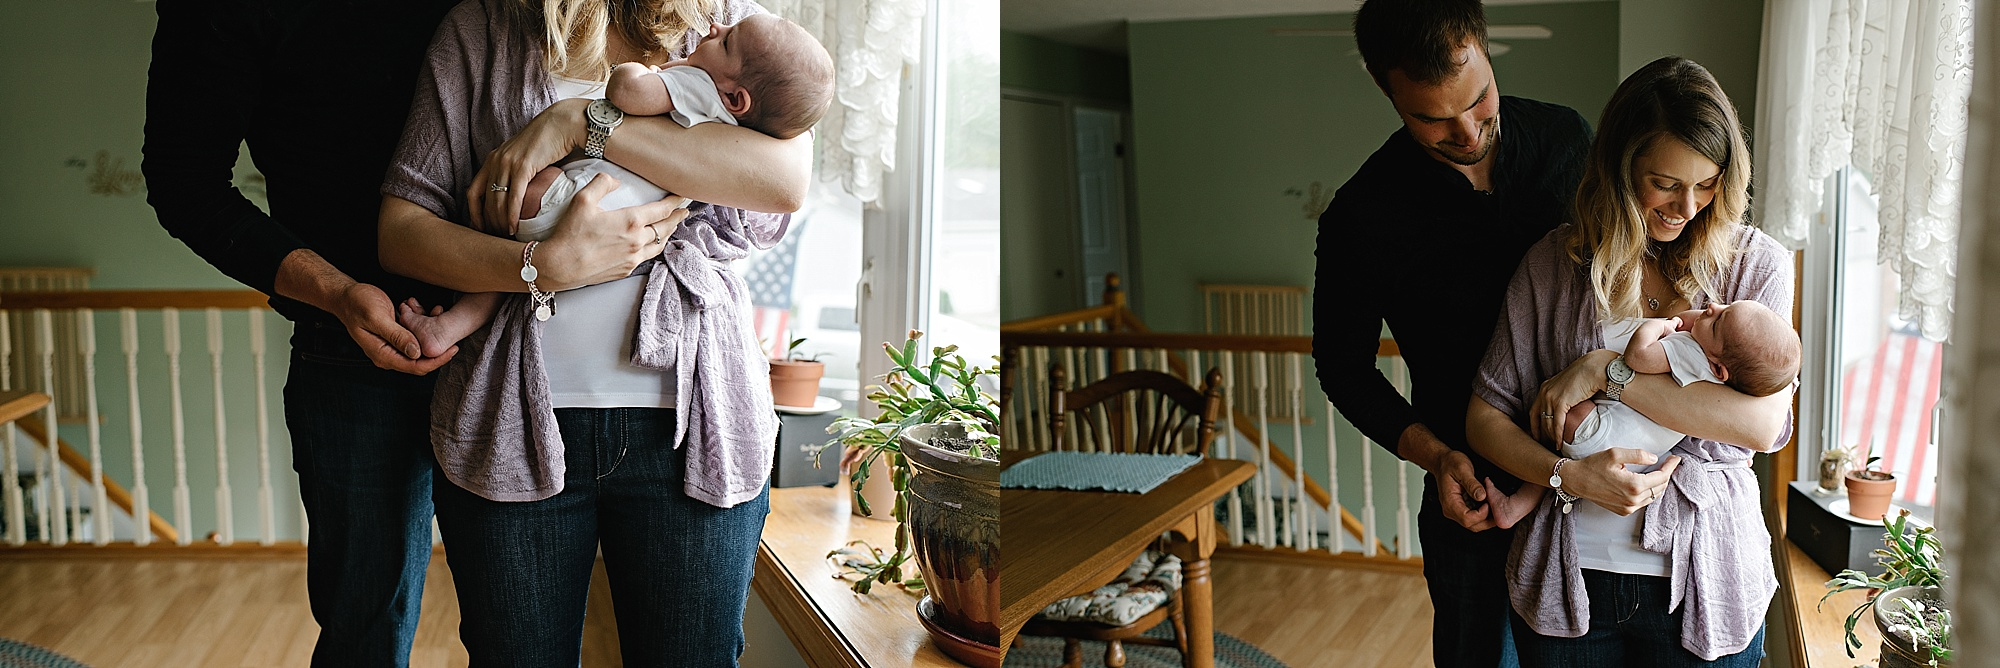 lauren-grayson-photography-cleveland-ohio-photographer-family-newborn-in-home-lifestyle-baby-session-gracelynne_0380.jpg